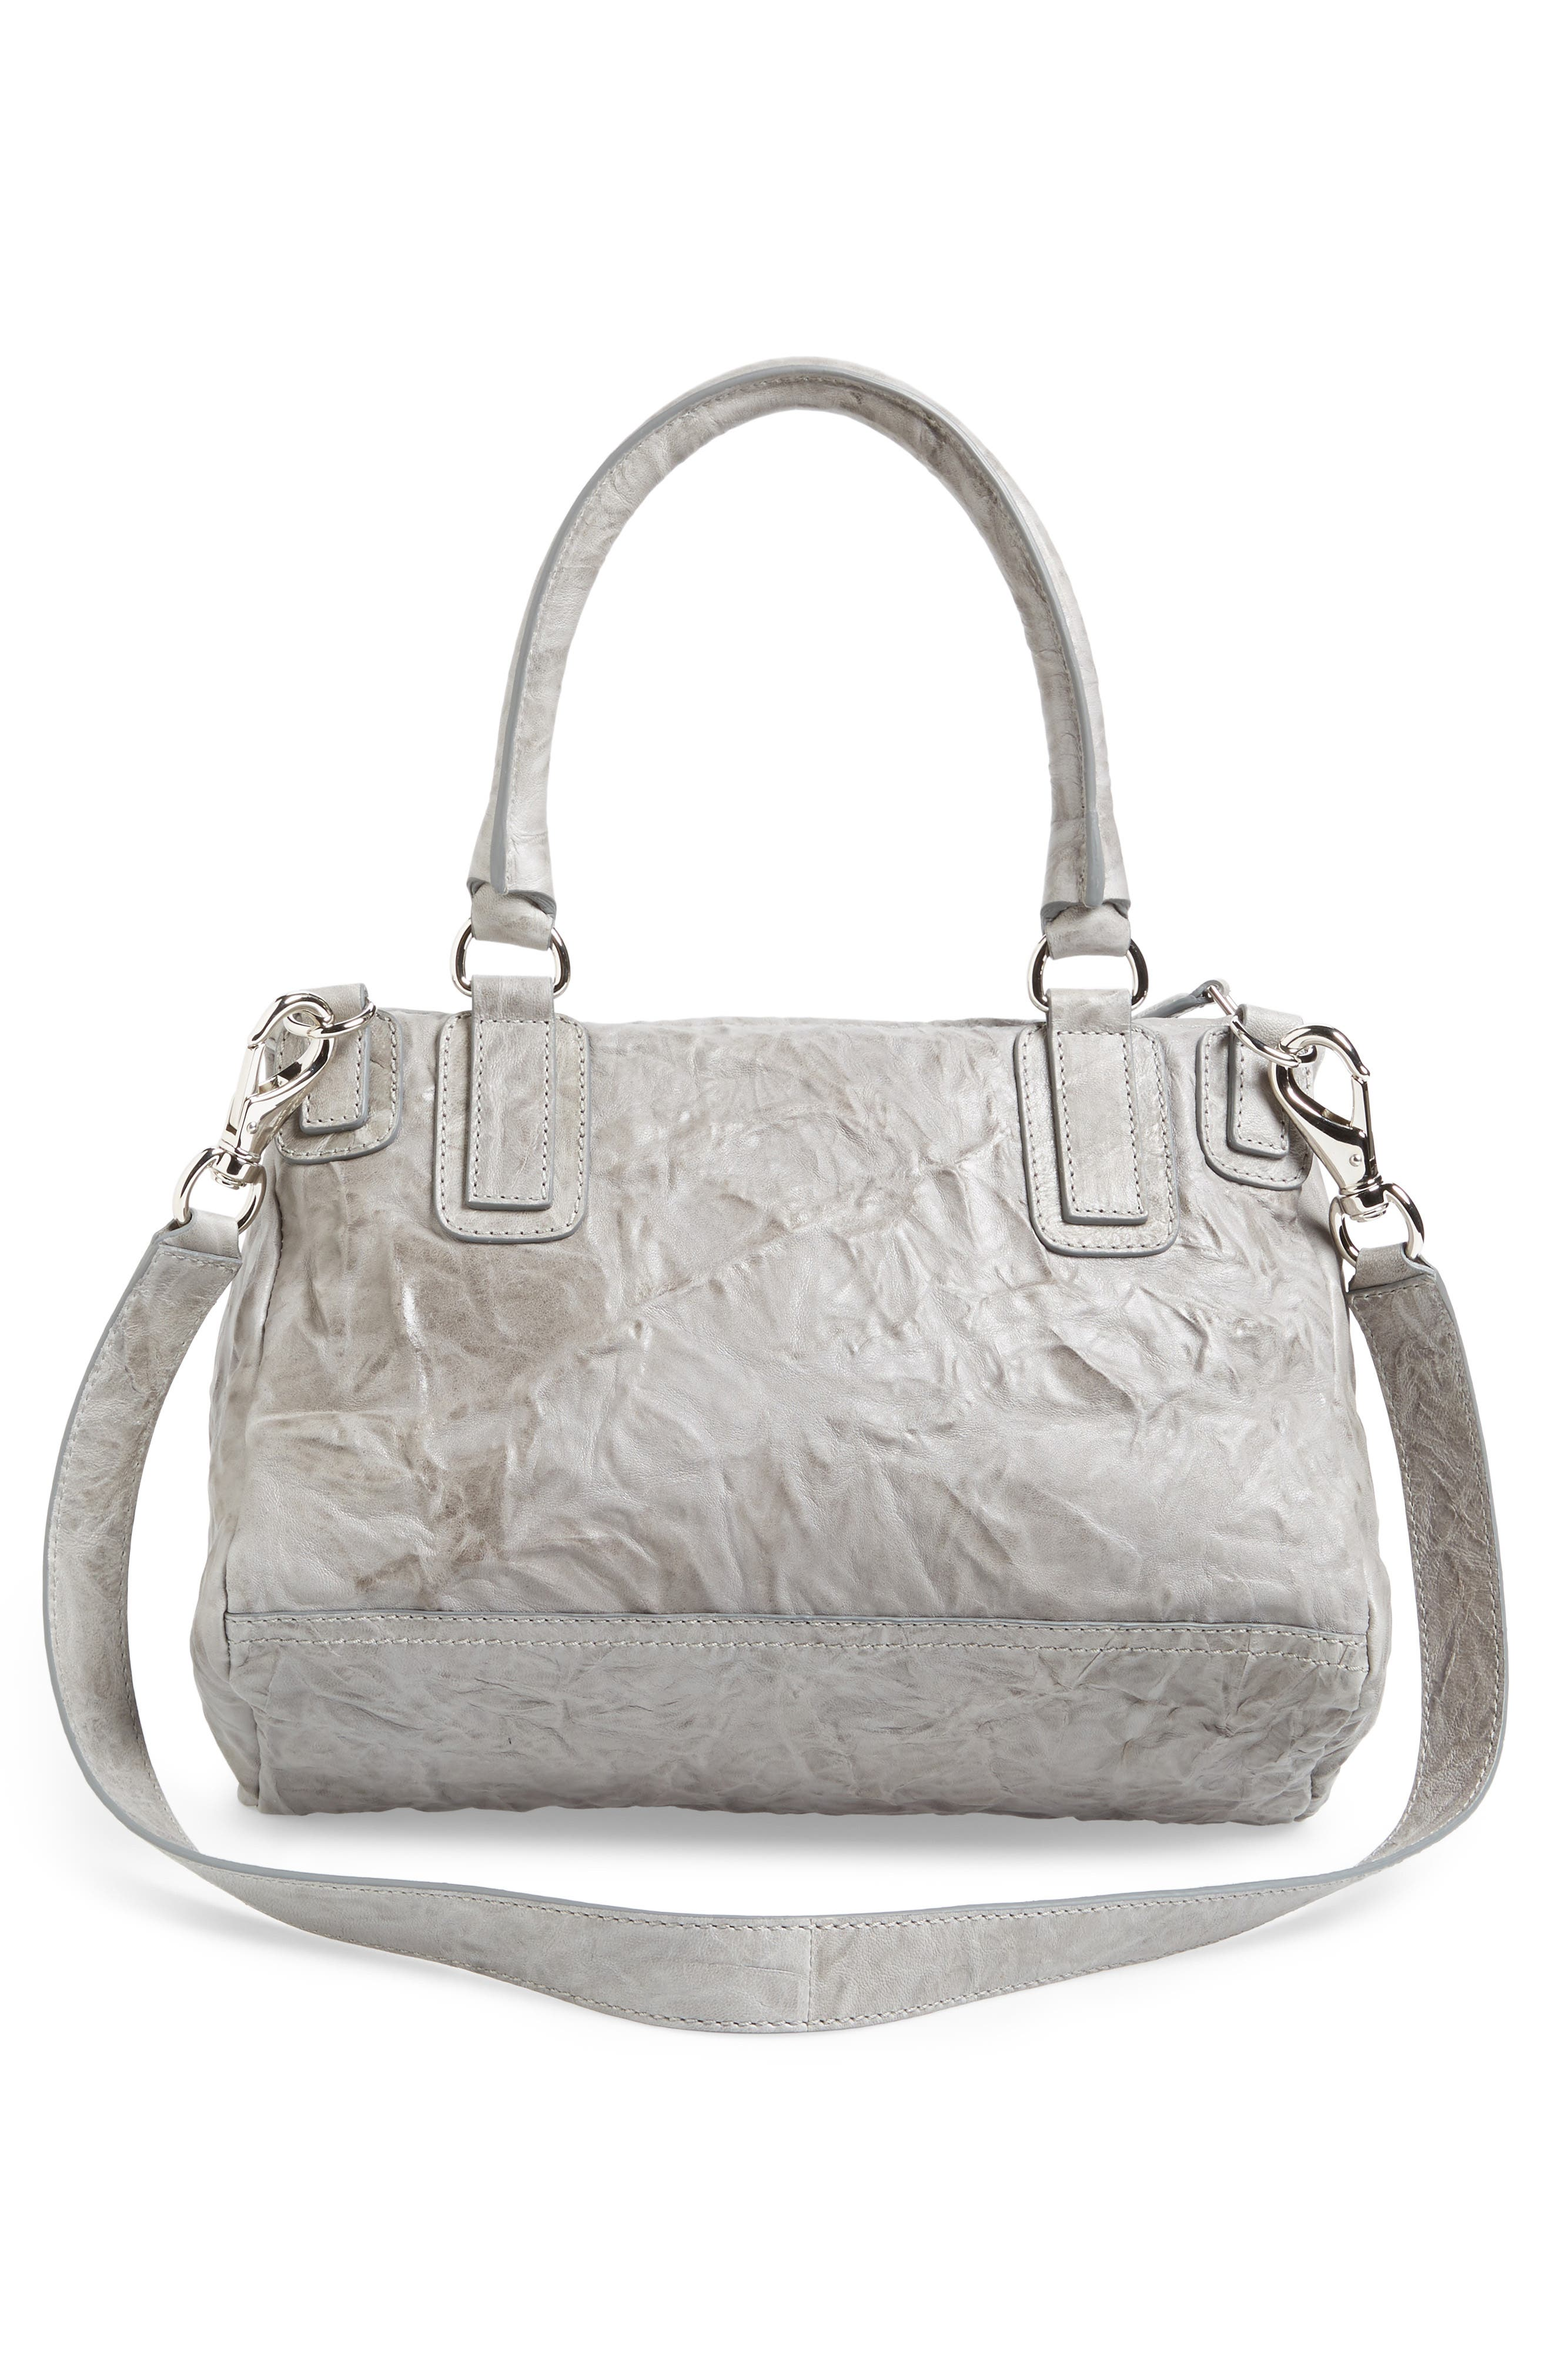 'Medium Pepe Pandora' Leather Satchel,                             Alternate thumbnail 3, color,                             PEARL GREY